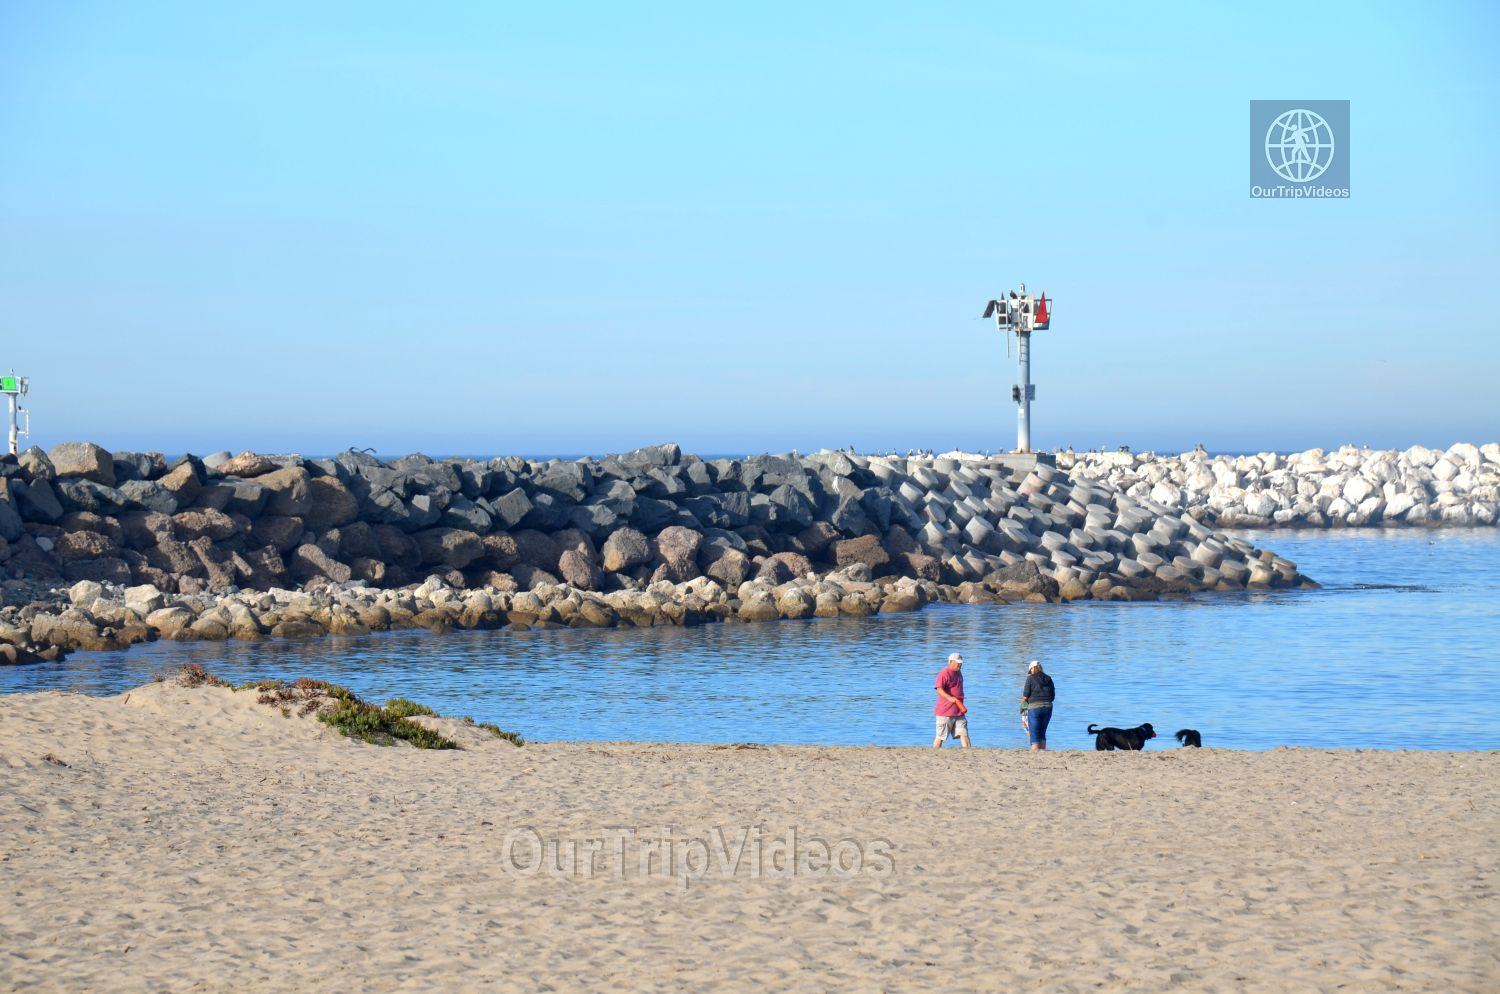 The Robert JL Visitor Center and Harbor cove beach, Ventura, CA, USA - Picture 22 of 25